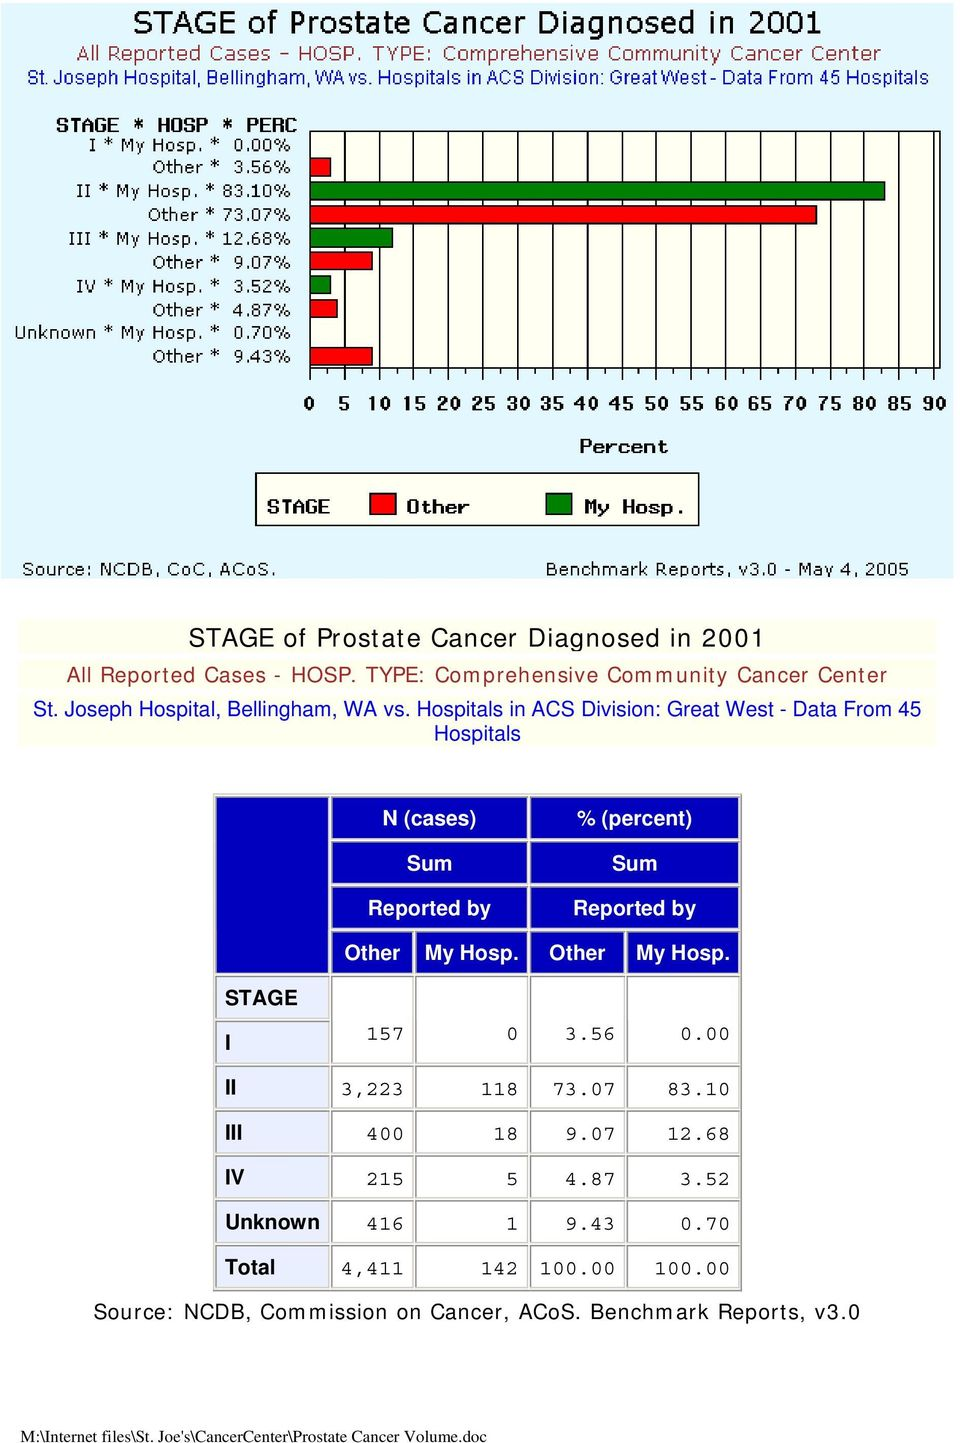 Hospitals in ACS Division: Great West - Data From 45 Hospitals N (cases) % (percent) Other My Hosp. Other My Hosp. STAGE I 157 0 3.